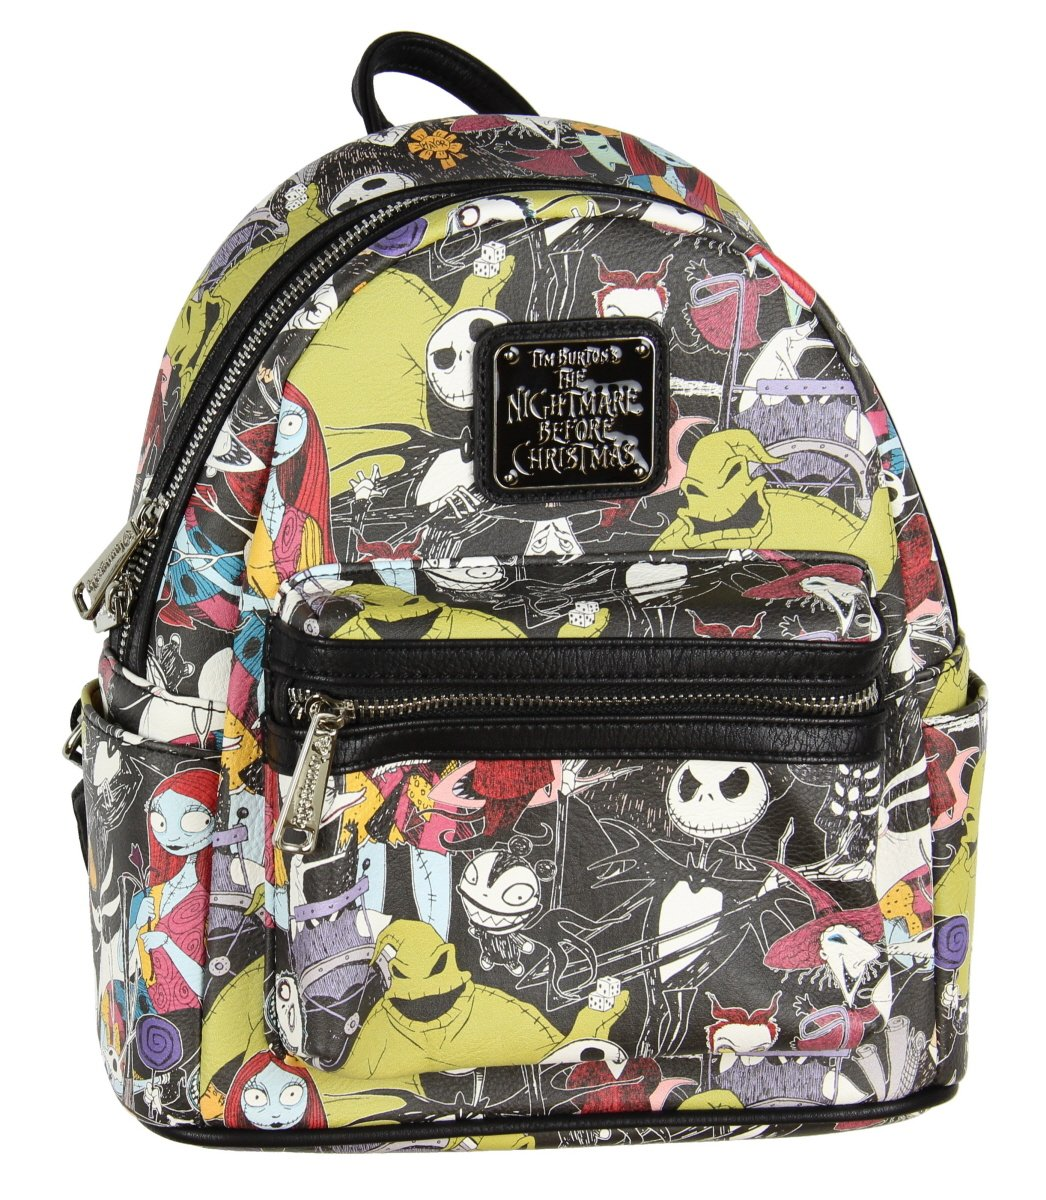 Loungefly The Nightmare Before Christmas Allover Print Character Mini Backpack WDBK0160